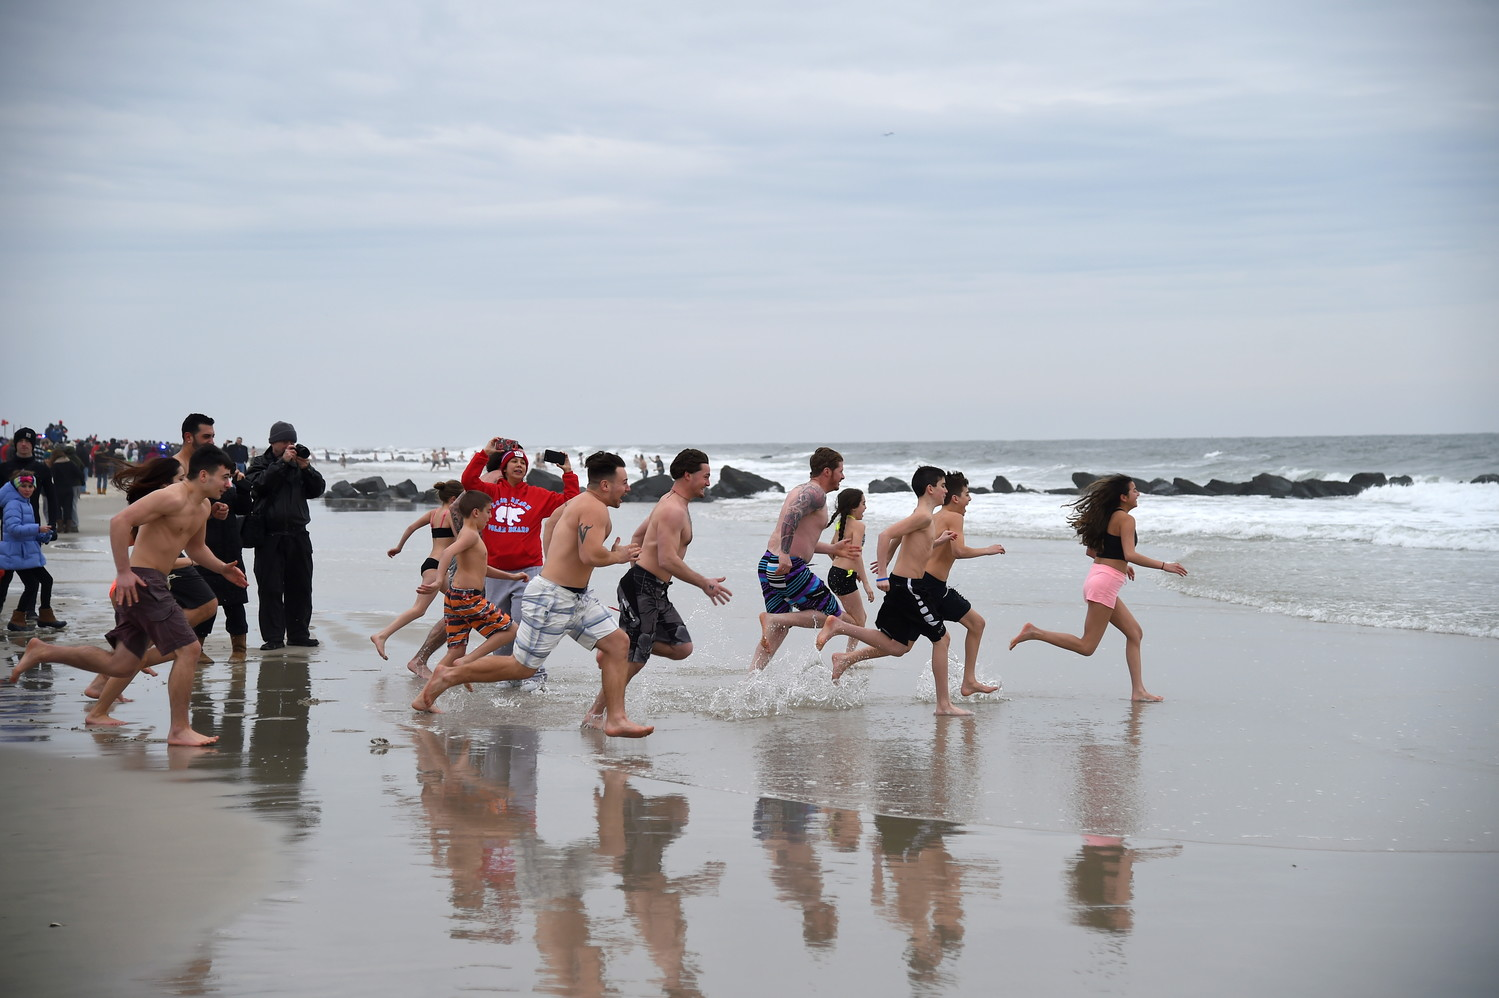 An icy Polar Plunge for locals raising cash for Special Olympics